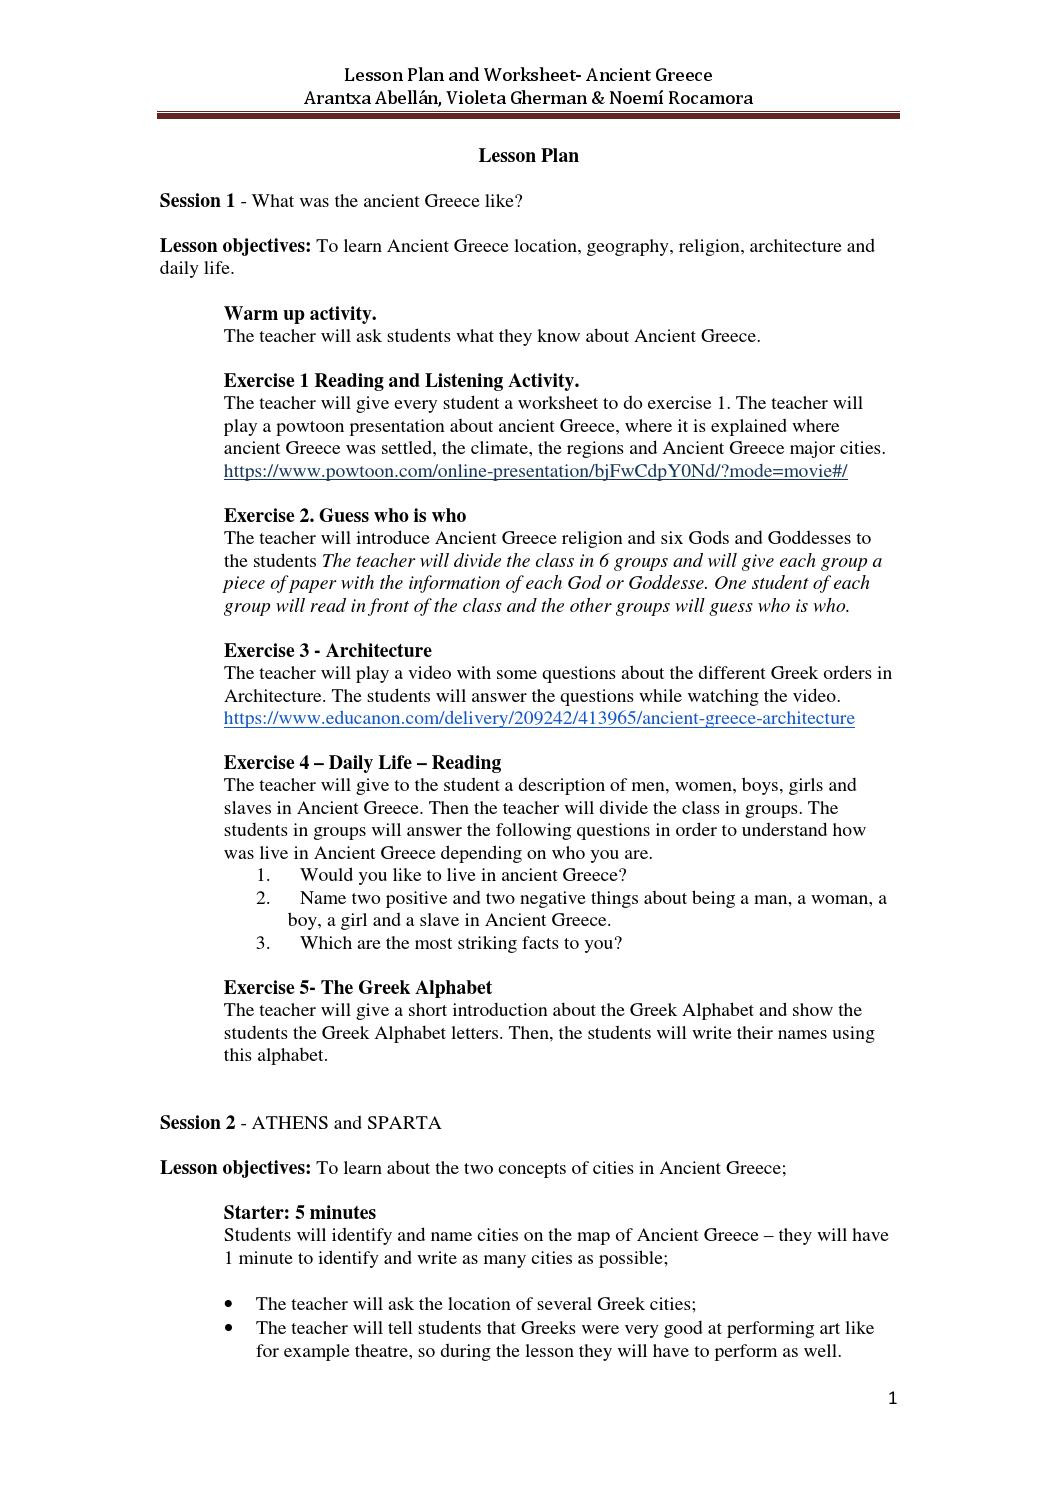 Summary Worksheets Middle School Clil Unit for 1ºeso Ancient Greec Lesson Plan and